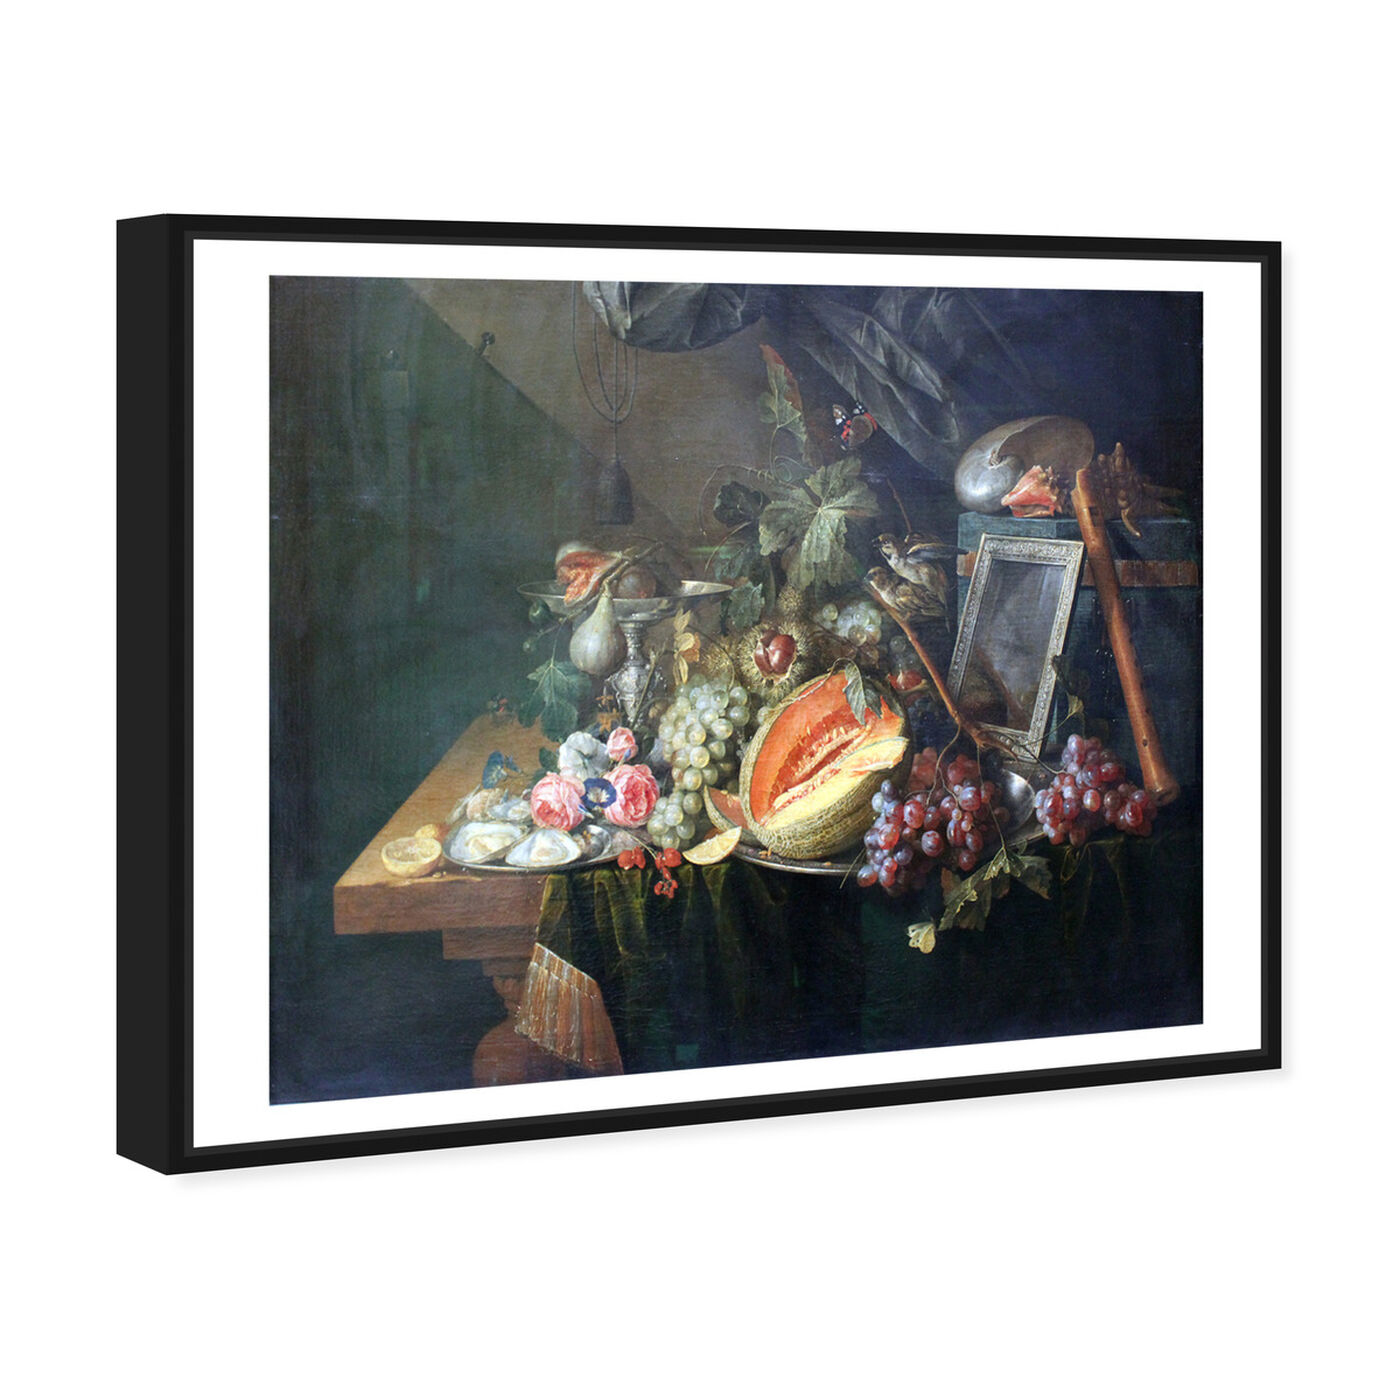 Angled view of Heem - Sumptuous Still Life featuring classic and figurative and classical figures art.